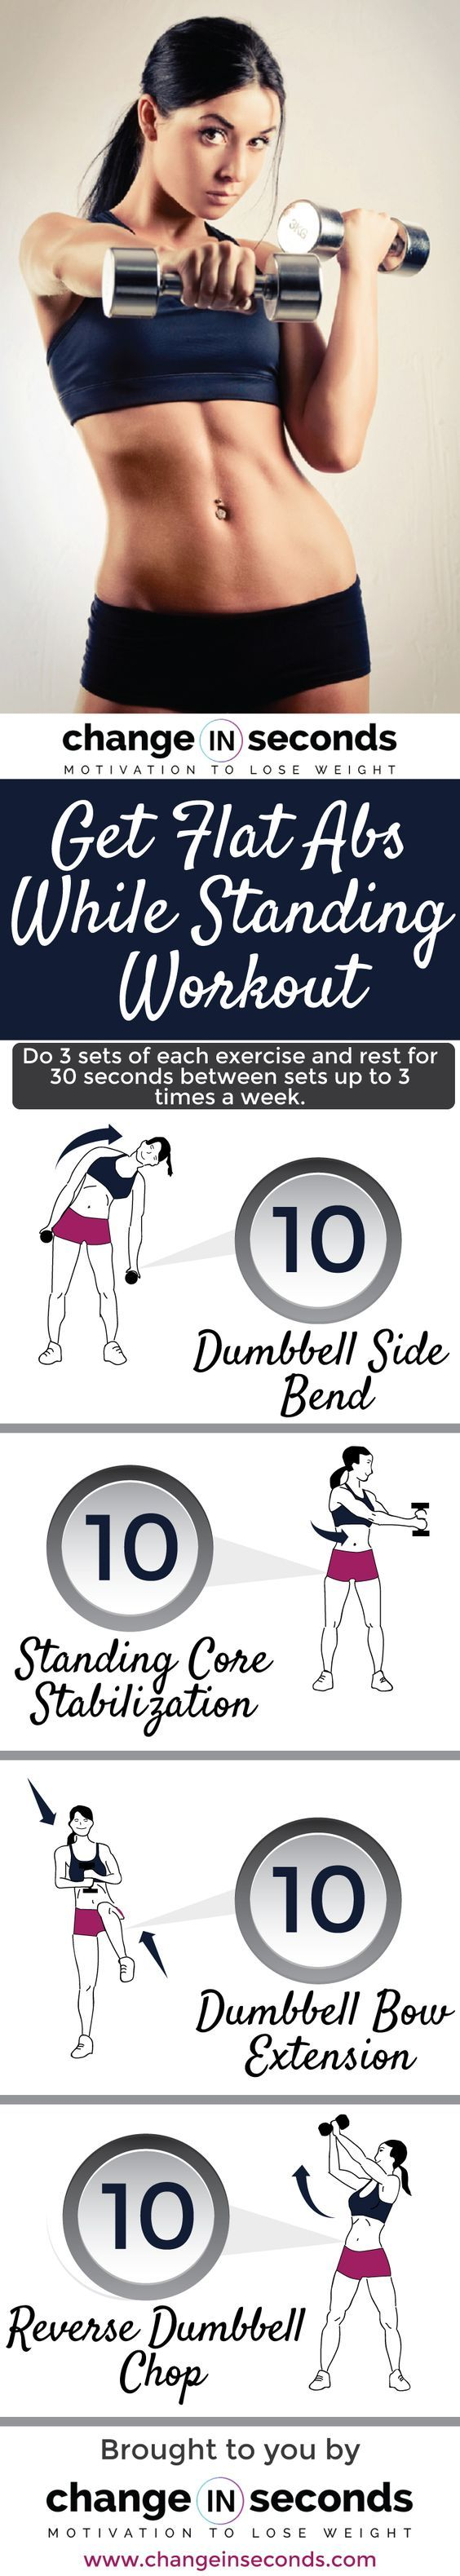 Get Flat Abs While Standing Workout http://www.changeinseconds.com/get-flat-abs-while-standing-workout/